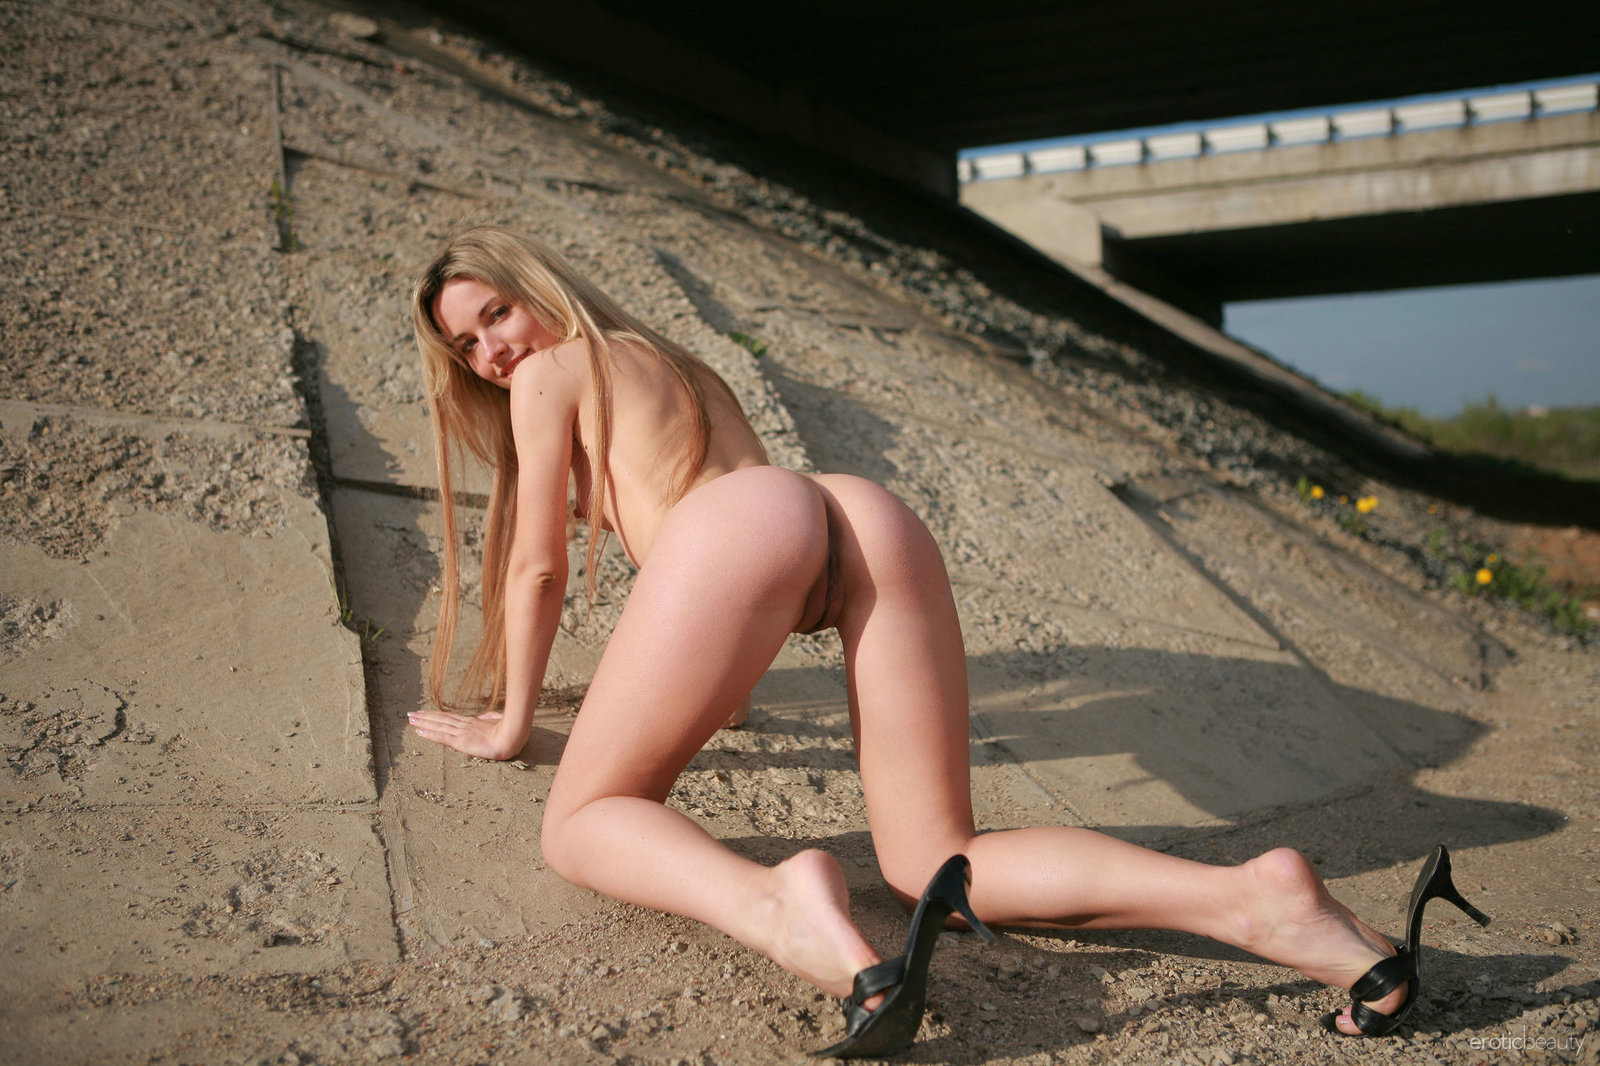 Natalia B In Gone Wild By Erotic Beauty 12 Photos -7890